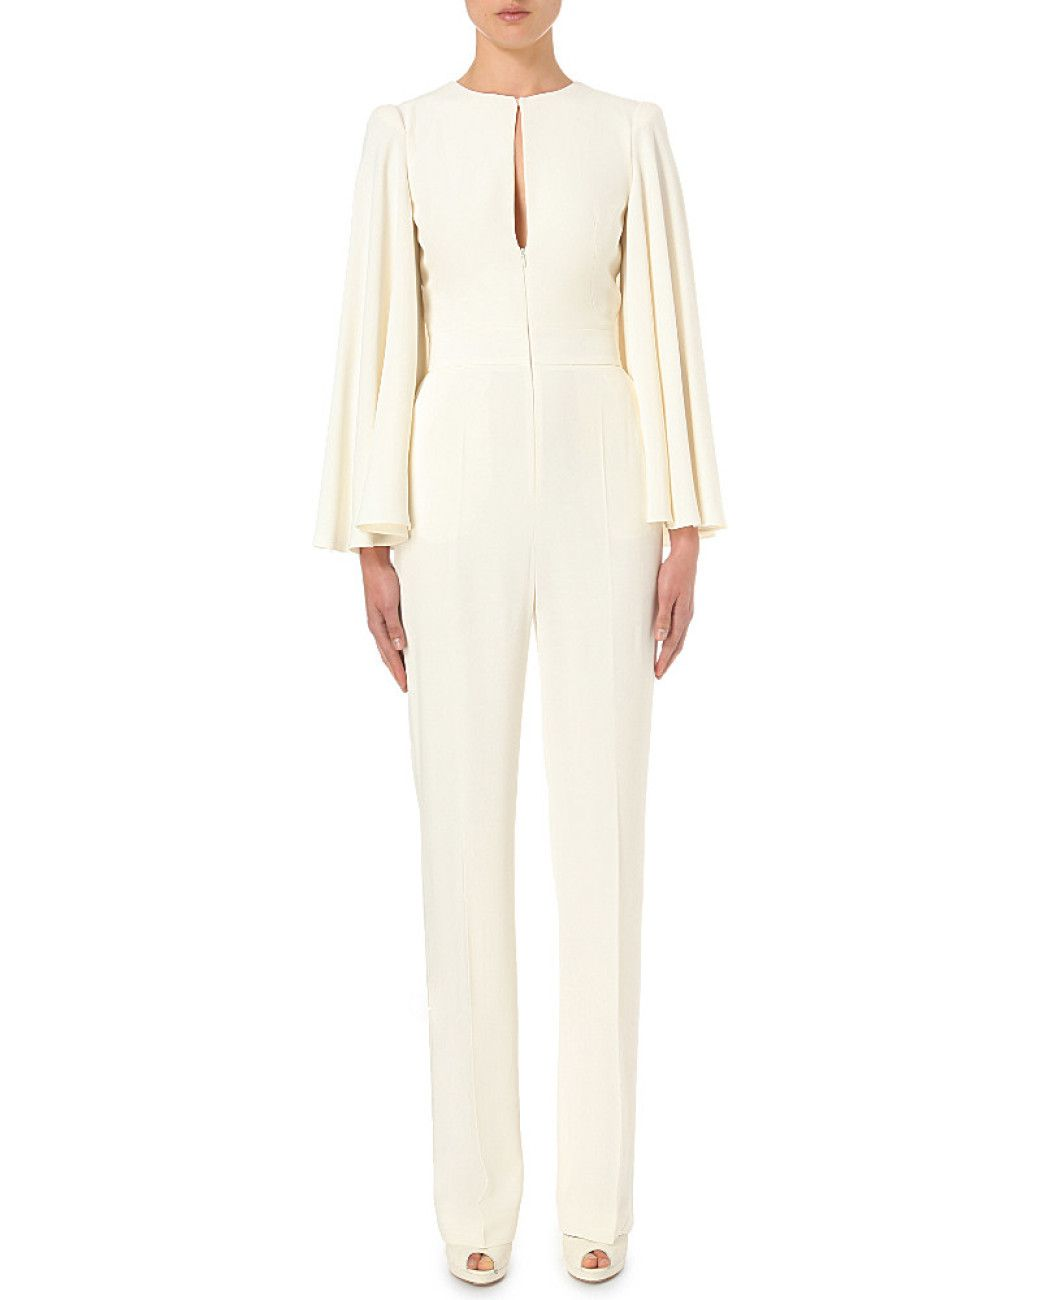 019cca67db8f Women s White Cape-detail Crepe Jumpsuit